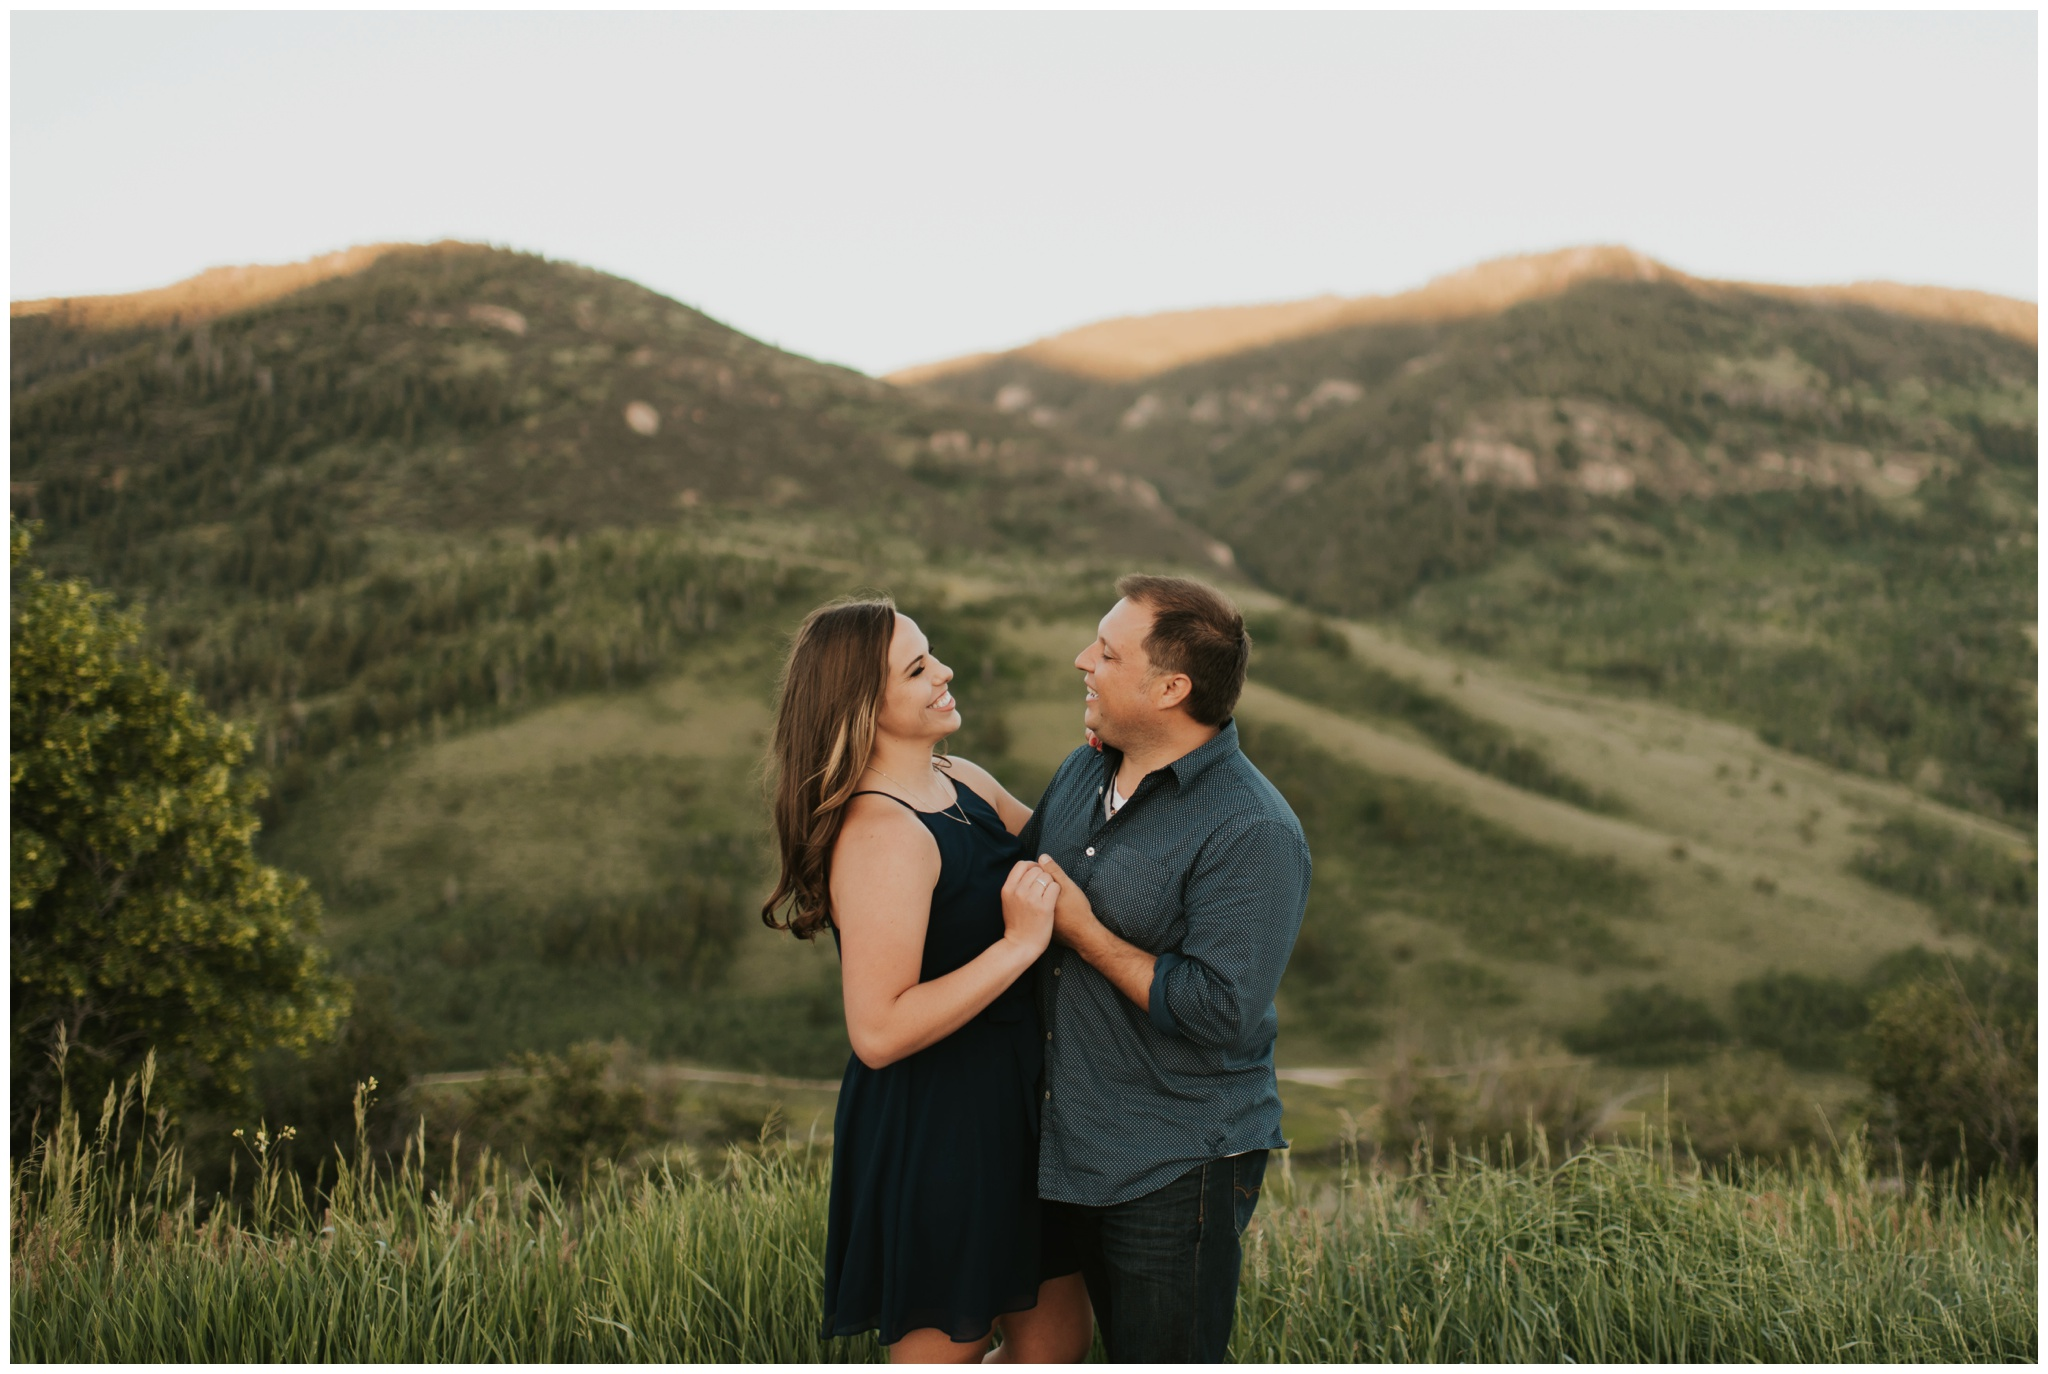 engagement session in Logan utah | www.riversandroadsphotography.com